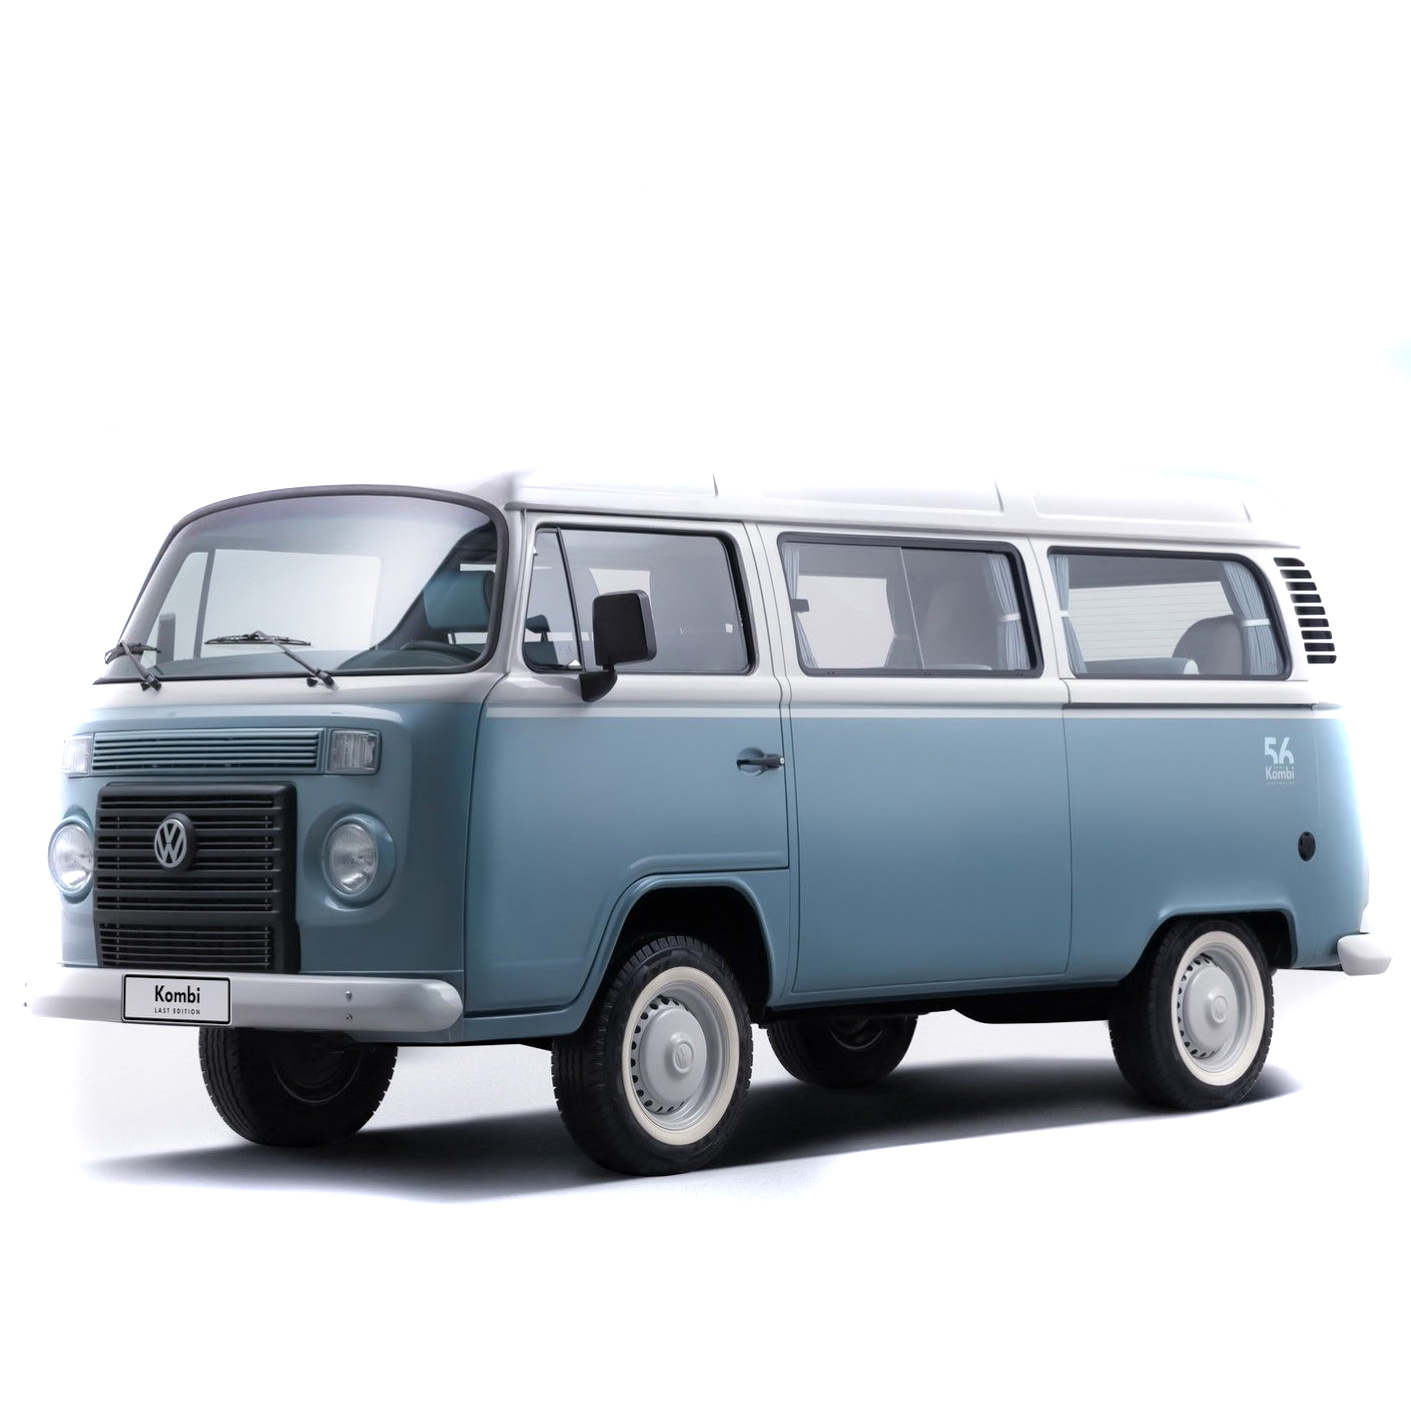 Volkswagen Kombi [Single Passenger] [2 rows] 2003 - 2012